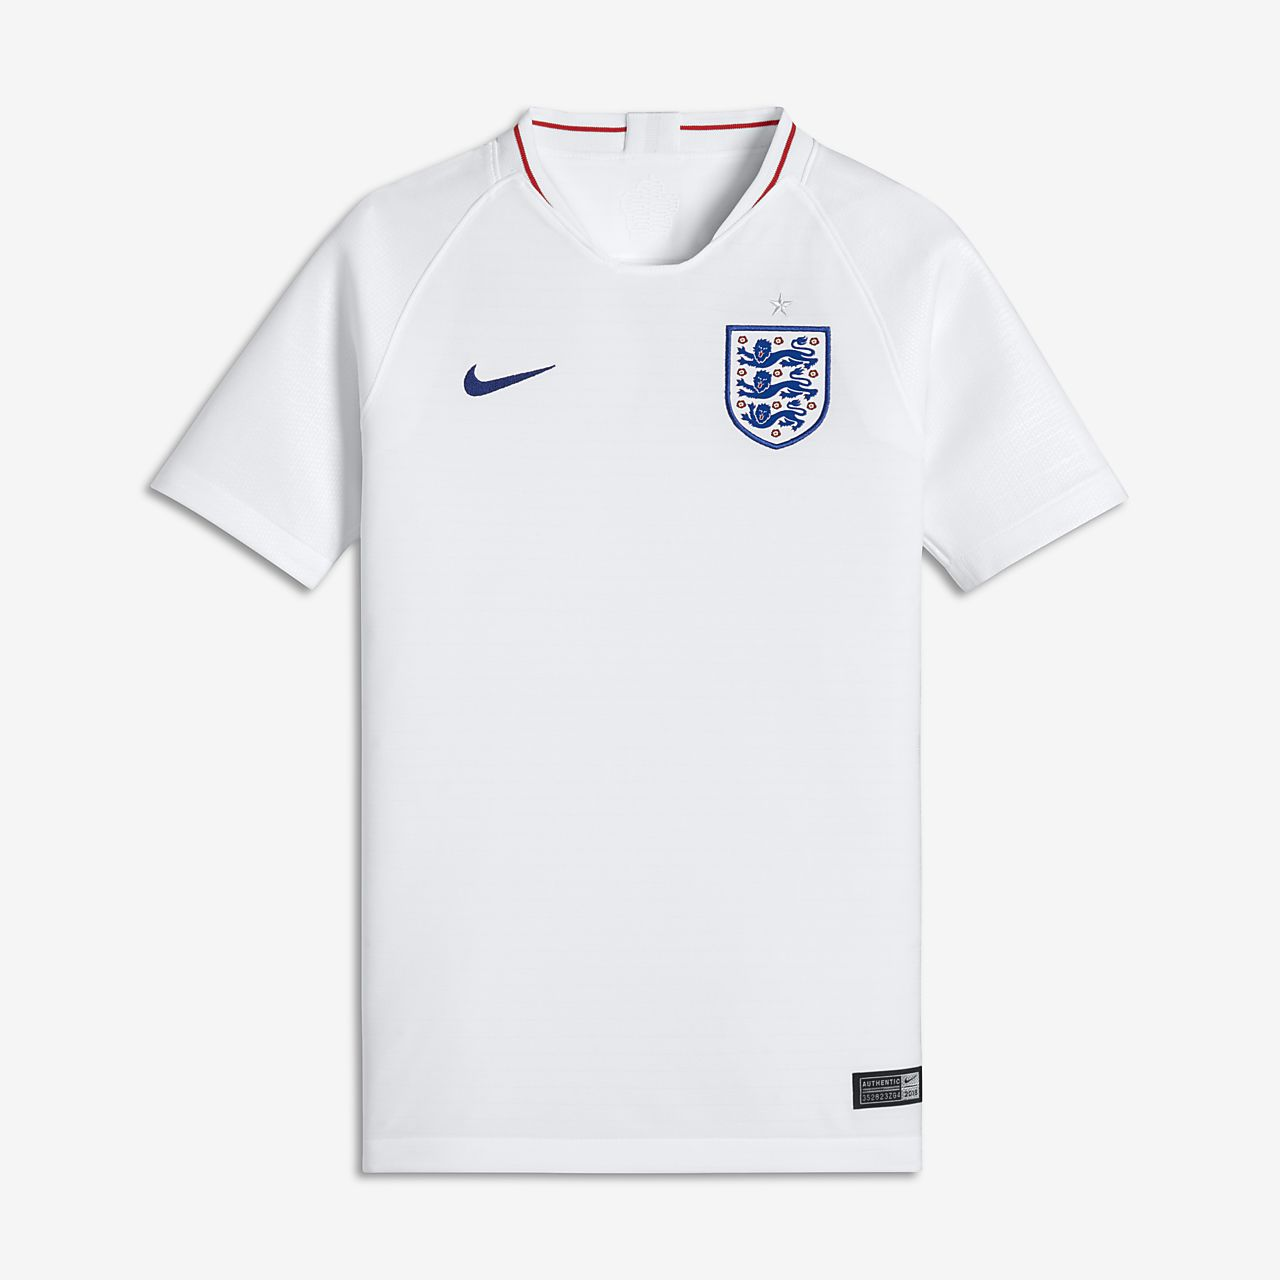 2018 England Stadium Home Older Kids' Football Shirt